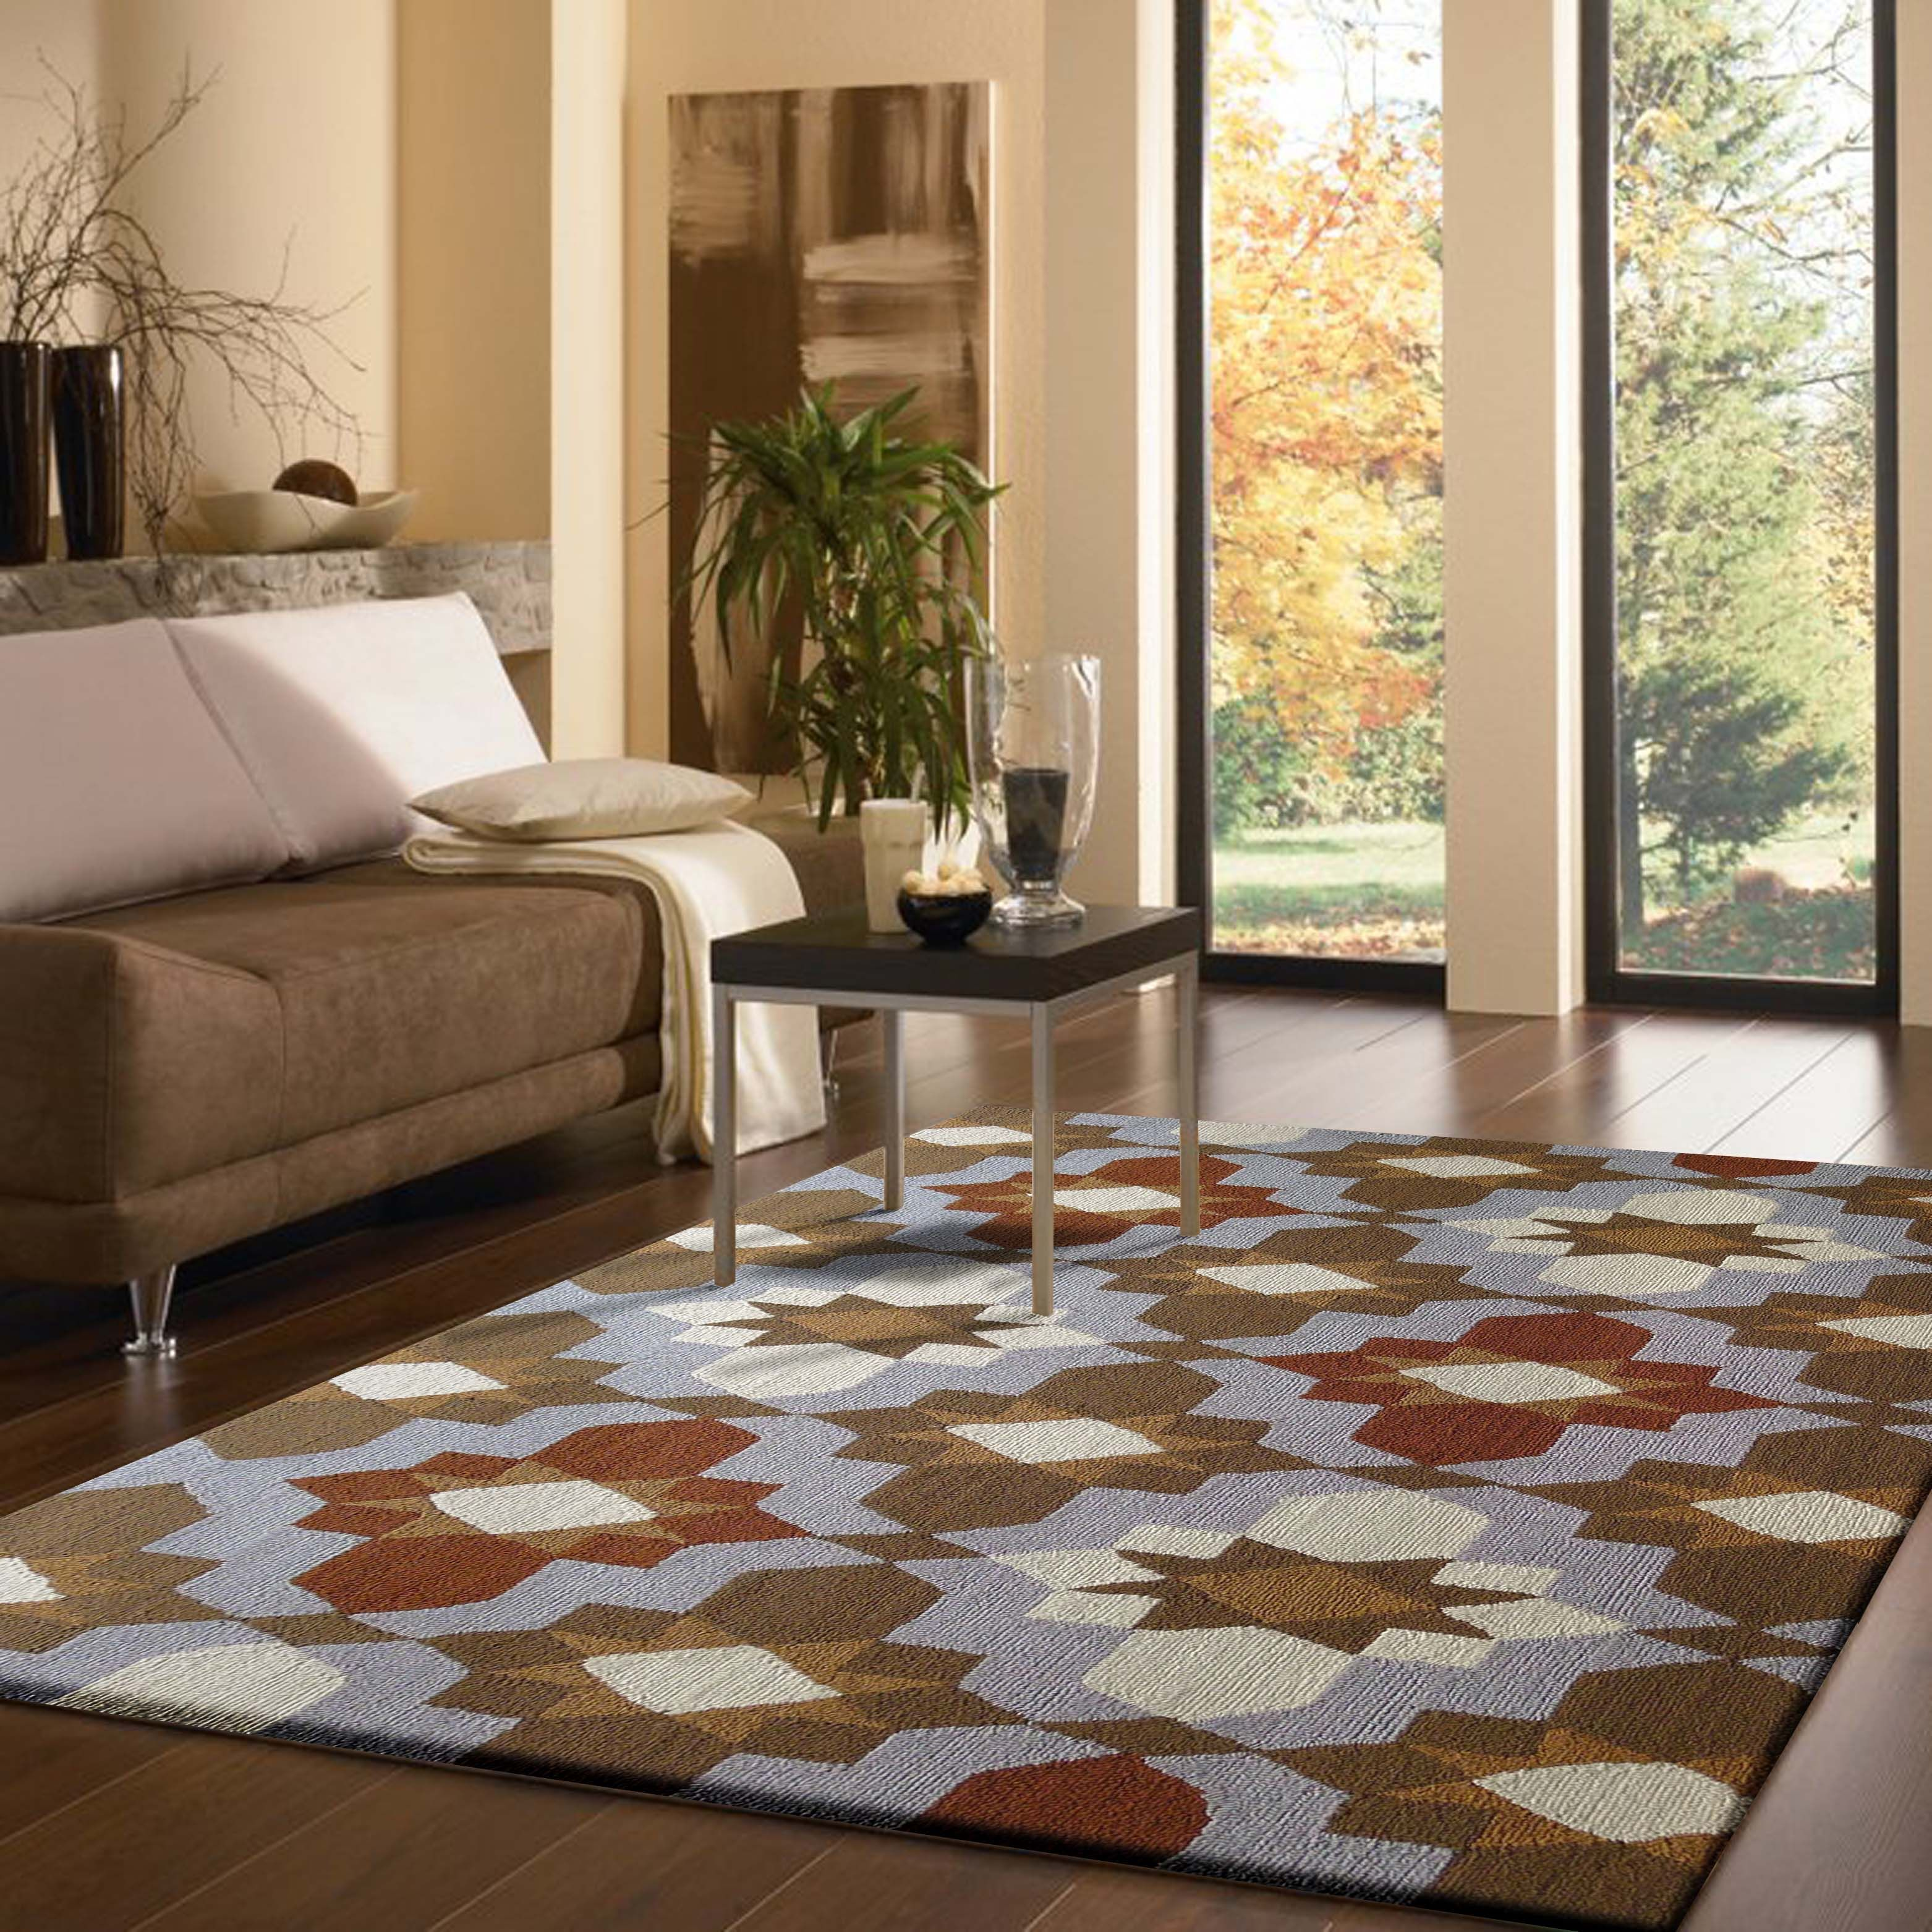 This multi color beige and grey indoor, area rug as you in the picture, its an nice fit with the right surroundings. http://rugaddiction.com/collections/vivid/products/outdoor-transitional-vibrant-multi-grey-area-rug